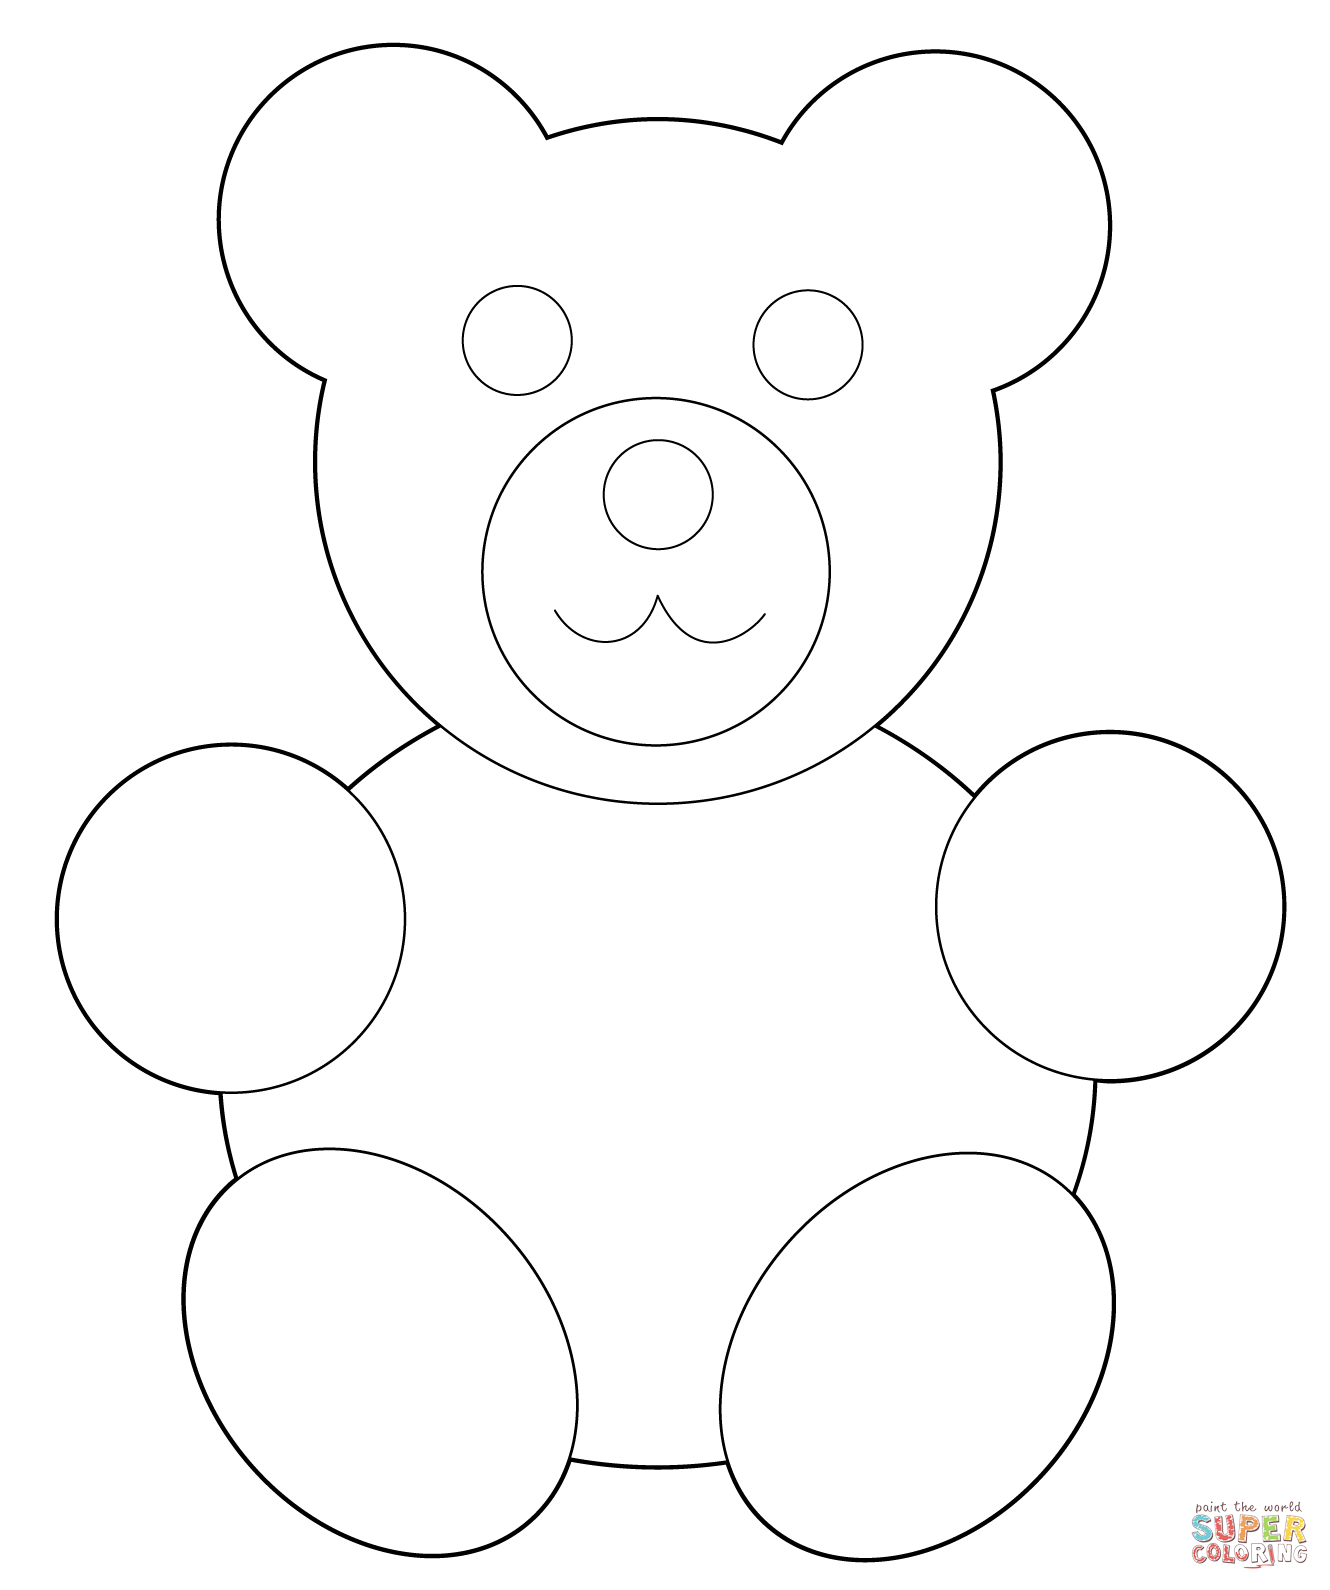 1330x1590 Simple Teddy Bear Coloring Page Free Printable Coloring Pages